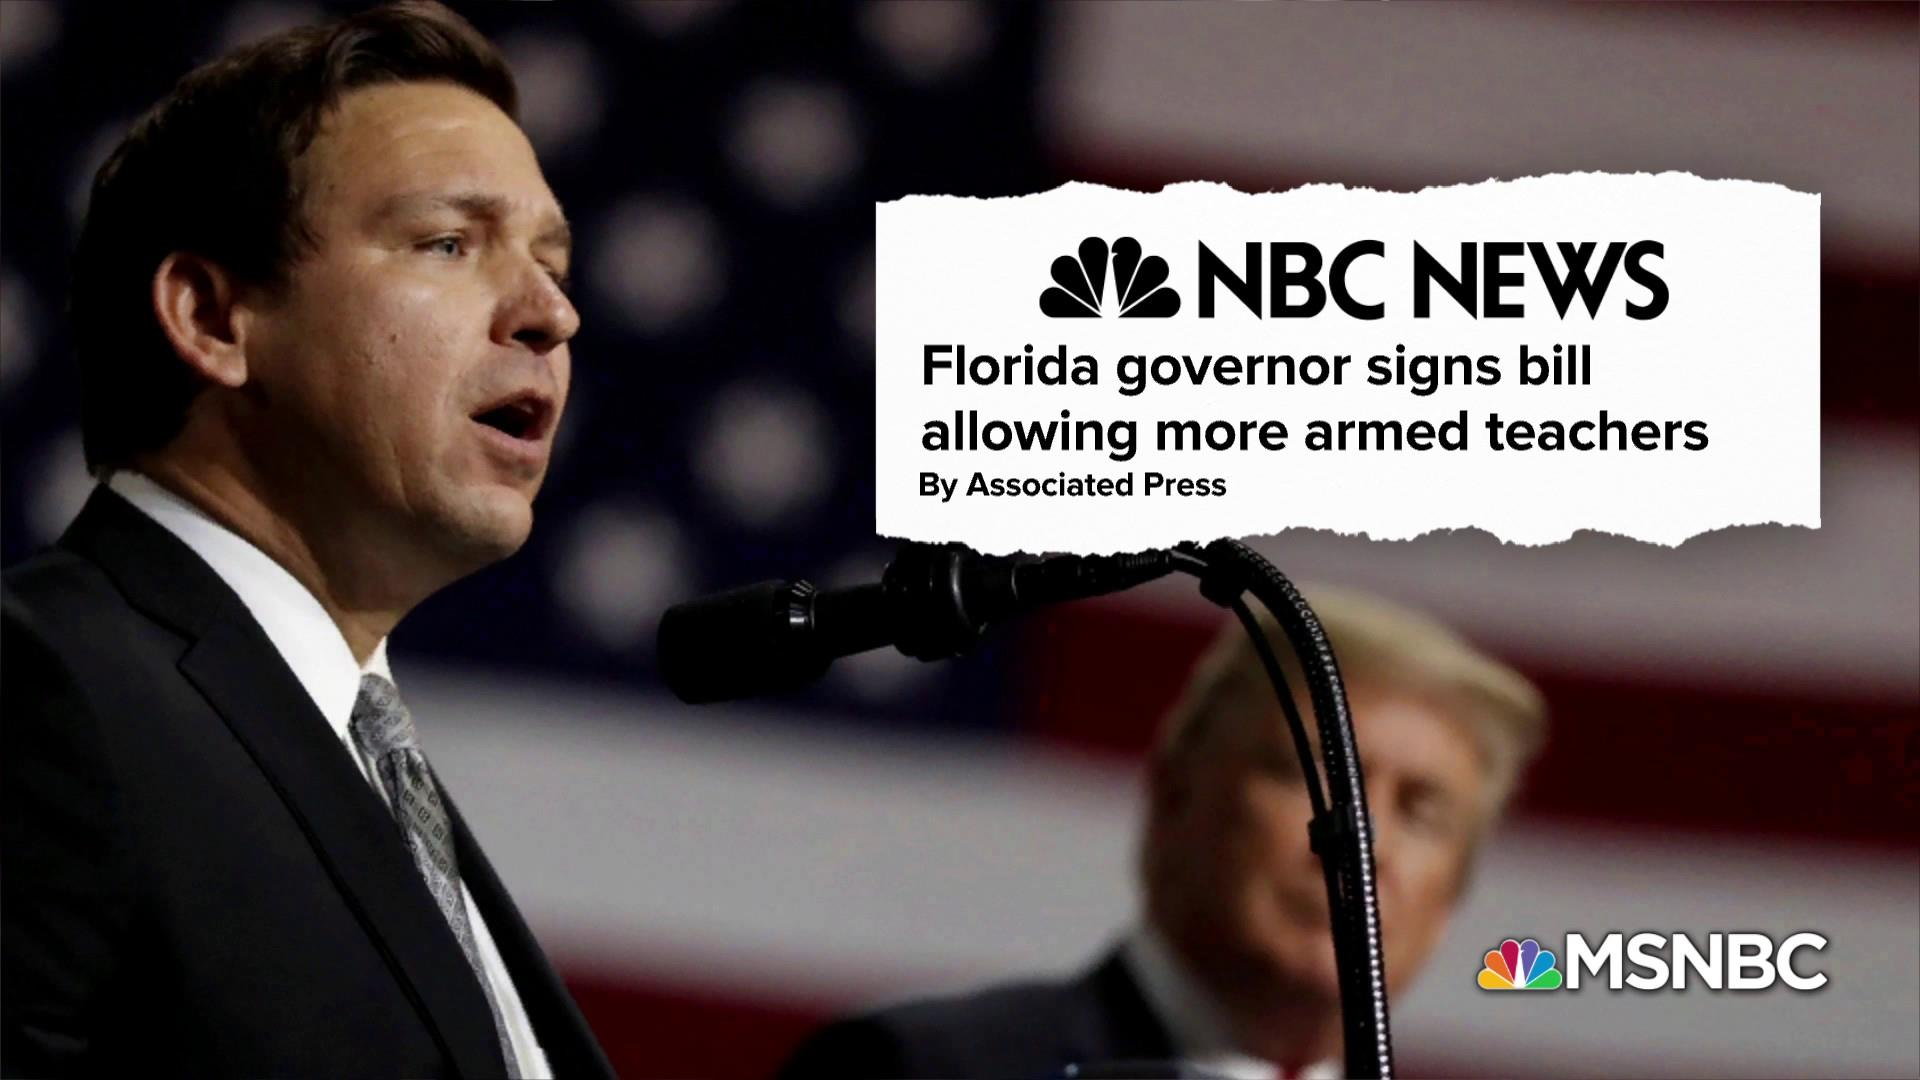 Florida governor signs bill allowing teachers to carry firearms